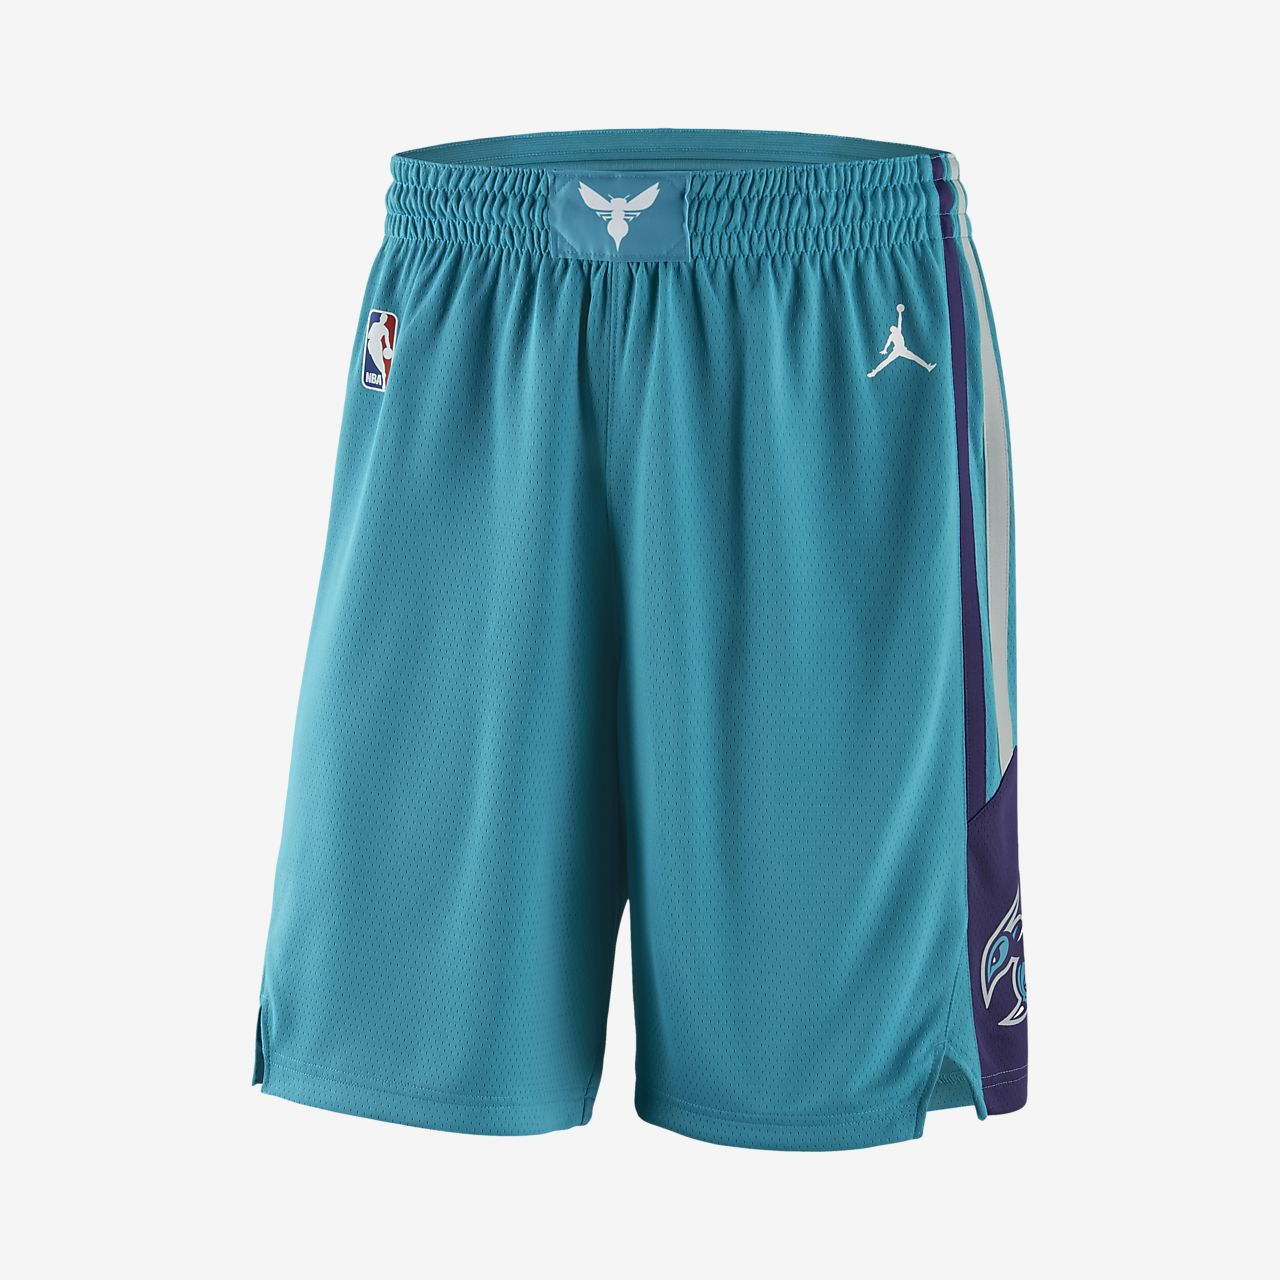 Charlotte Hornets Jordan Icon Edition Swingman Men's NBA Shorts